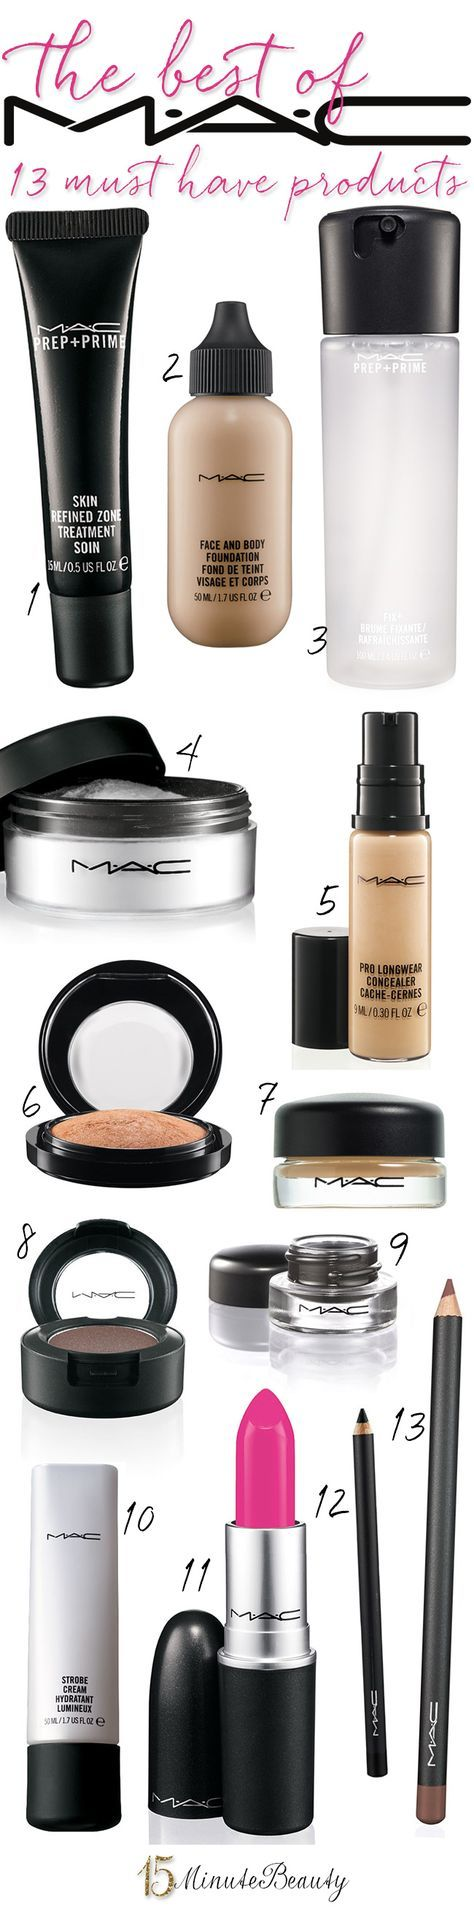 15 Minute Beauty Fanatic: The Best of MAC: The 13 Products You Must Have! i plan...